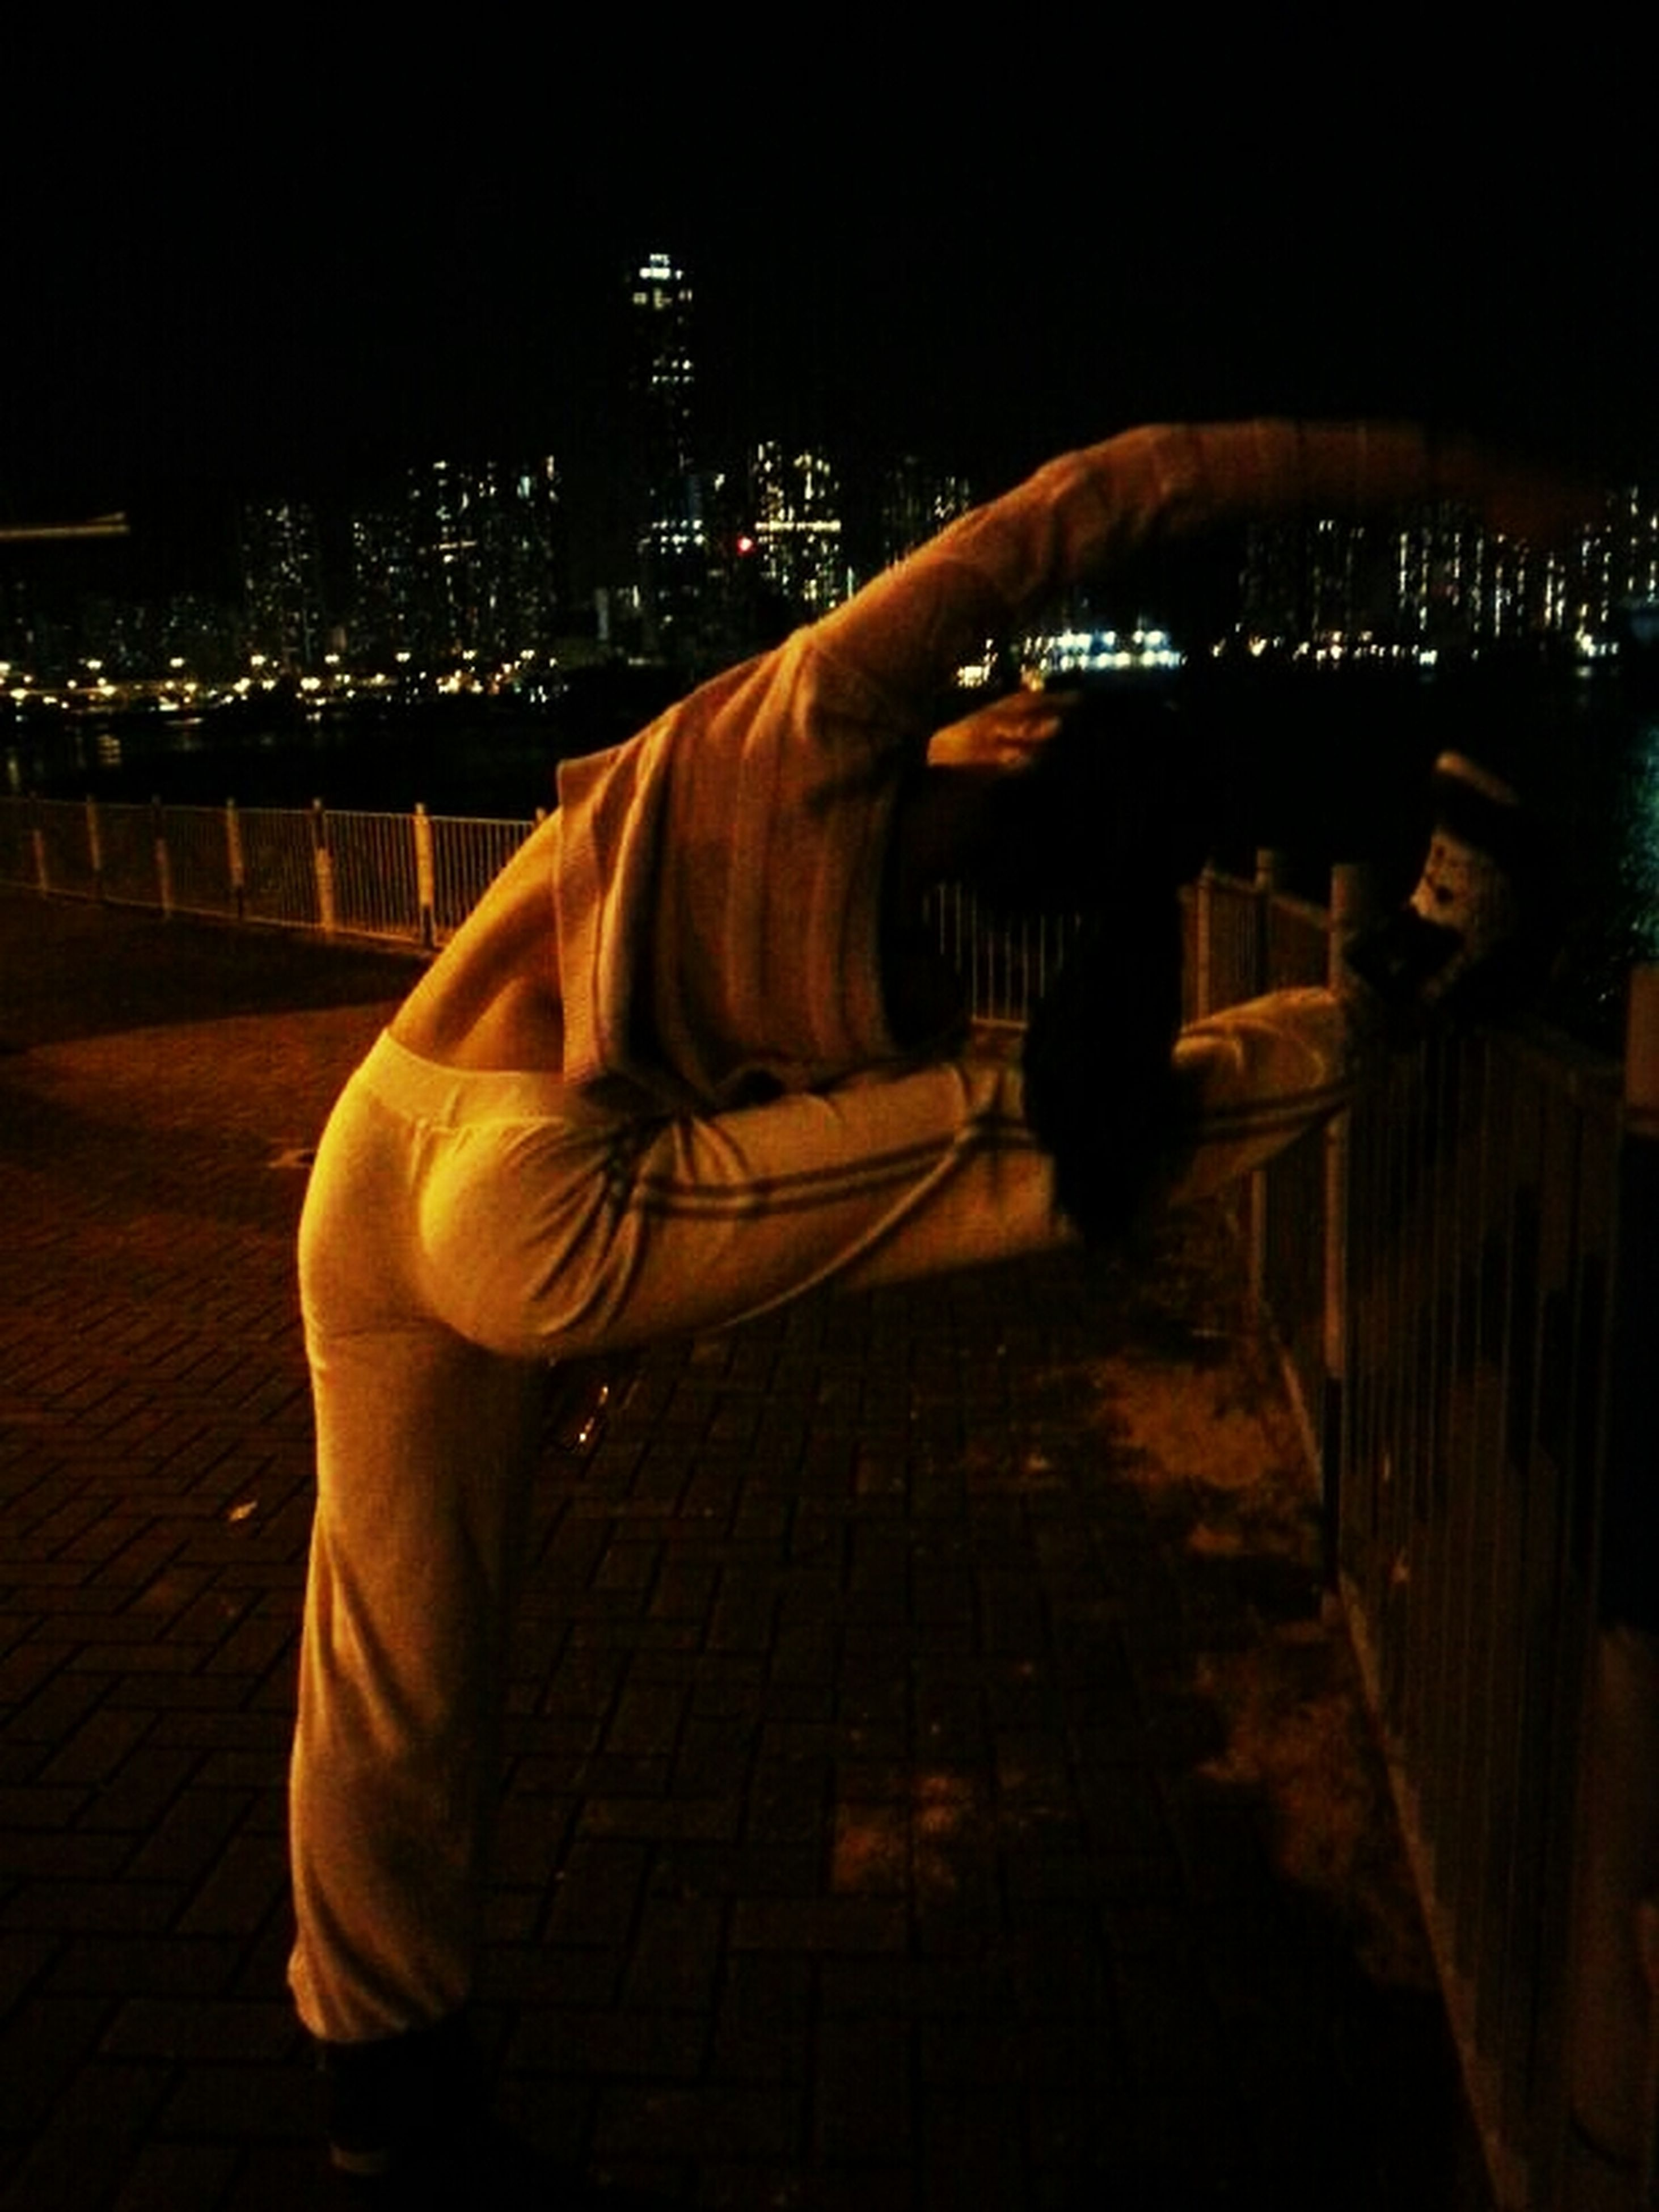 night, illuminated, architecture, city, built structure, building exterior, lifestyles, men, cityscape, rear view, city life, leisure activity, dark, person, lighting equipment, standing, full length, outdoors